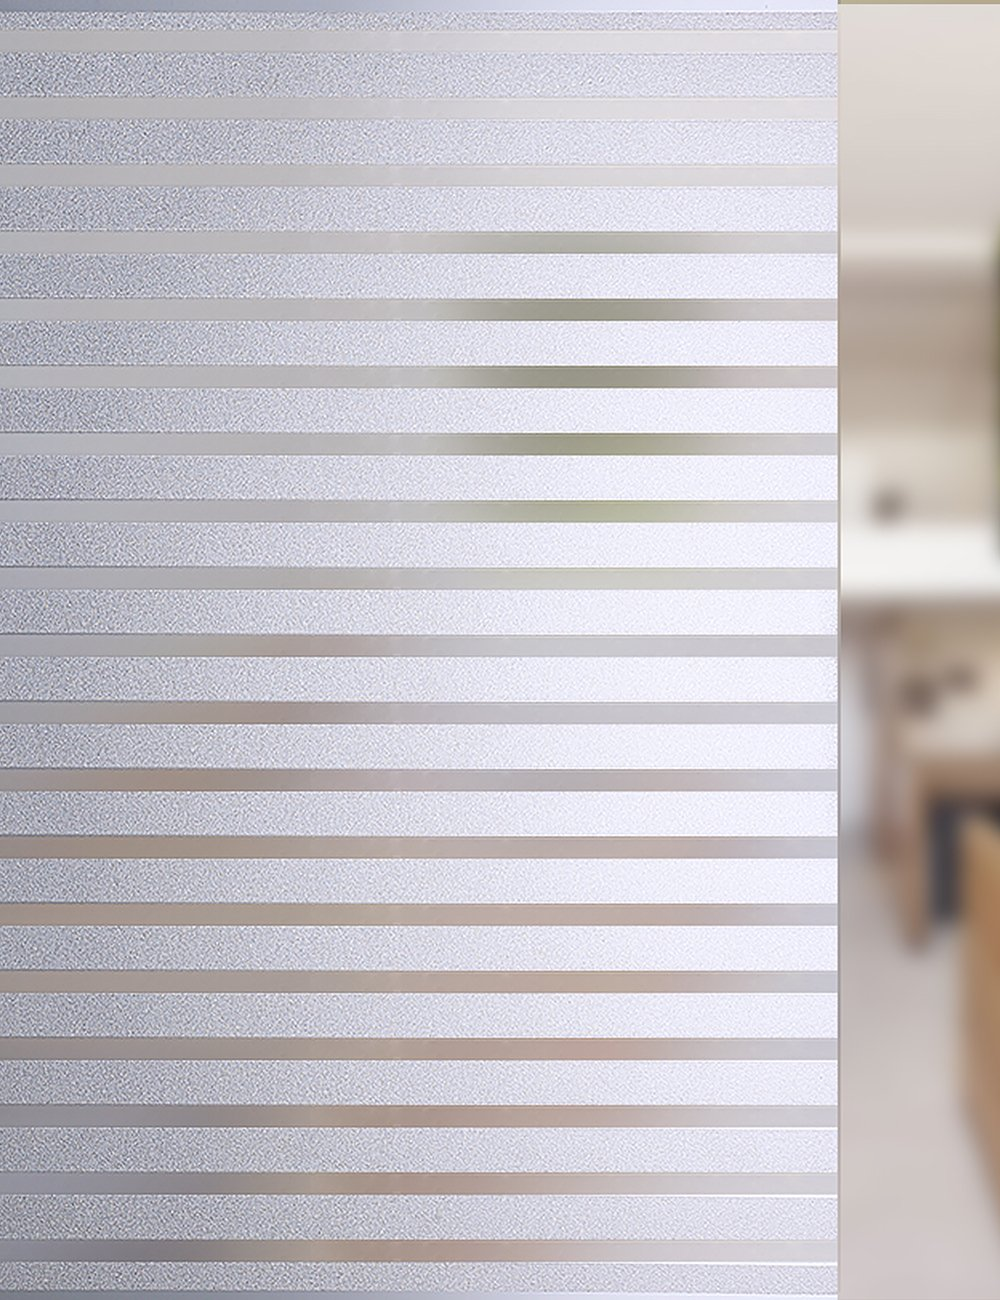 FancyFix Privacy Stripe No-glue Window Film PVC Matte Frosted Static Cling Window Film for Home Classroom Office Meeting Room Kitchen 35.4in x 78.7in